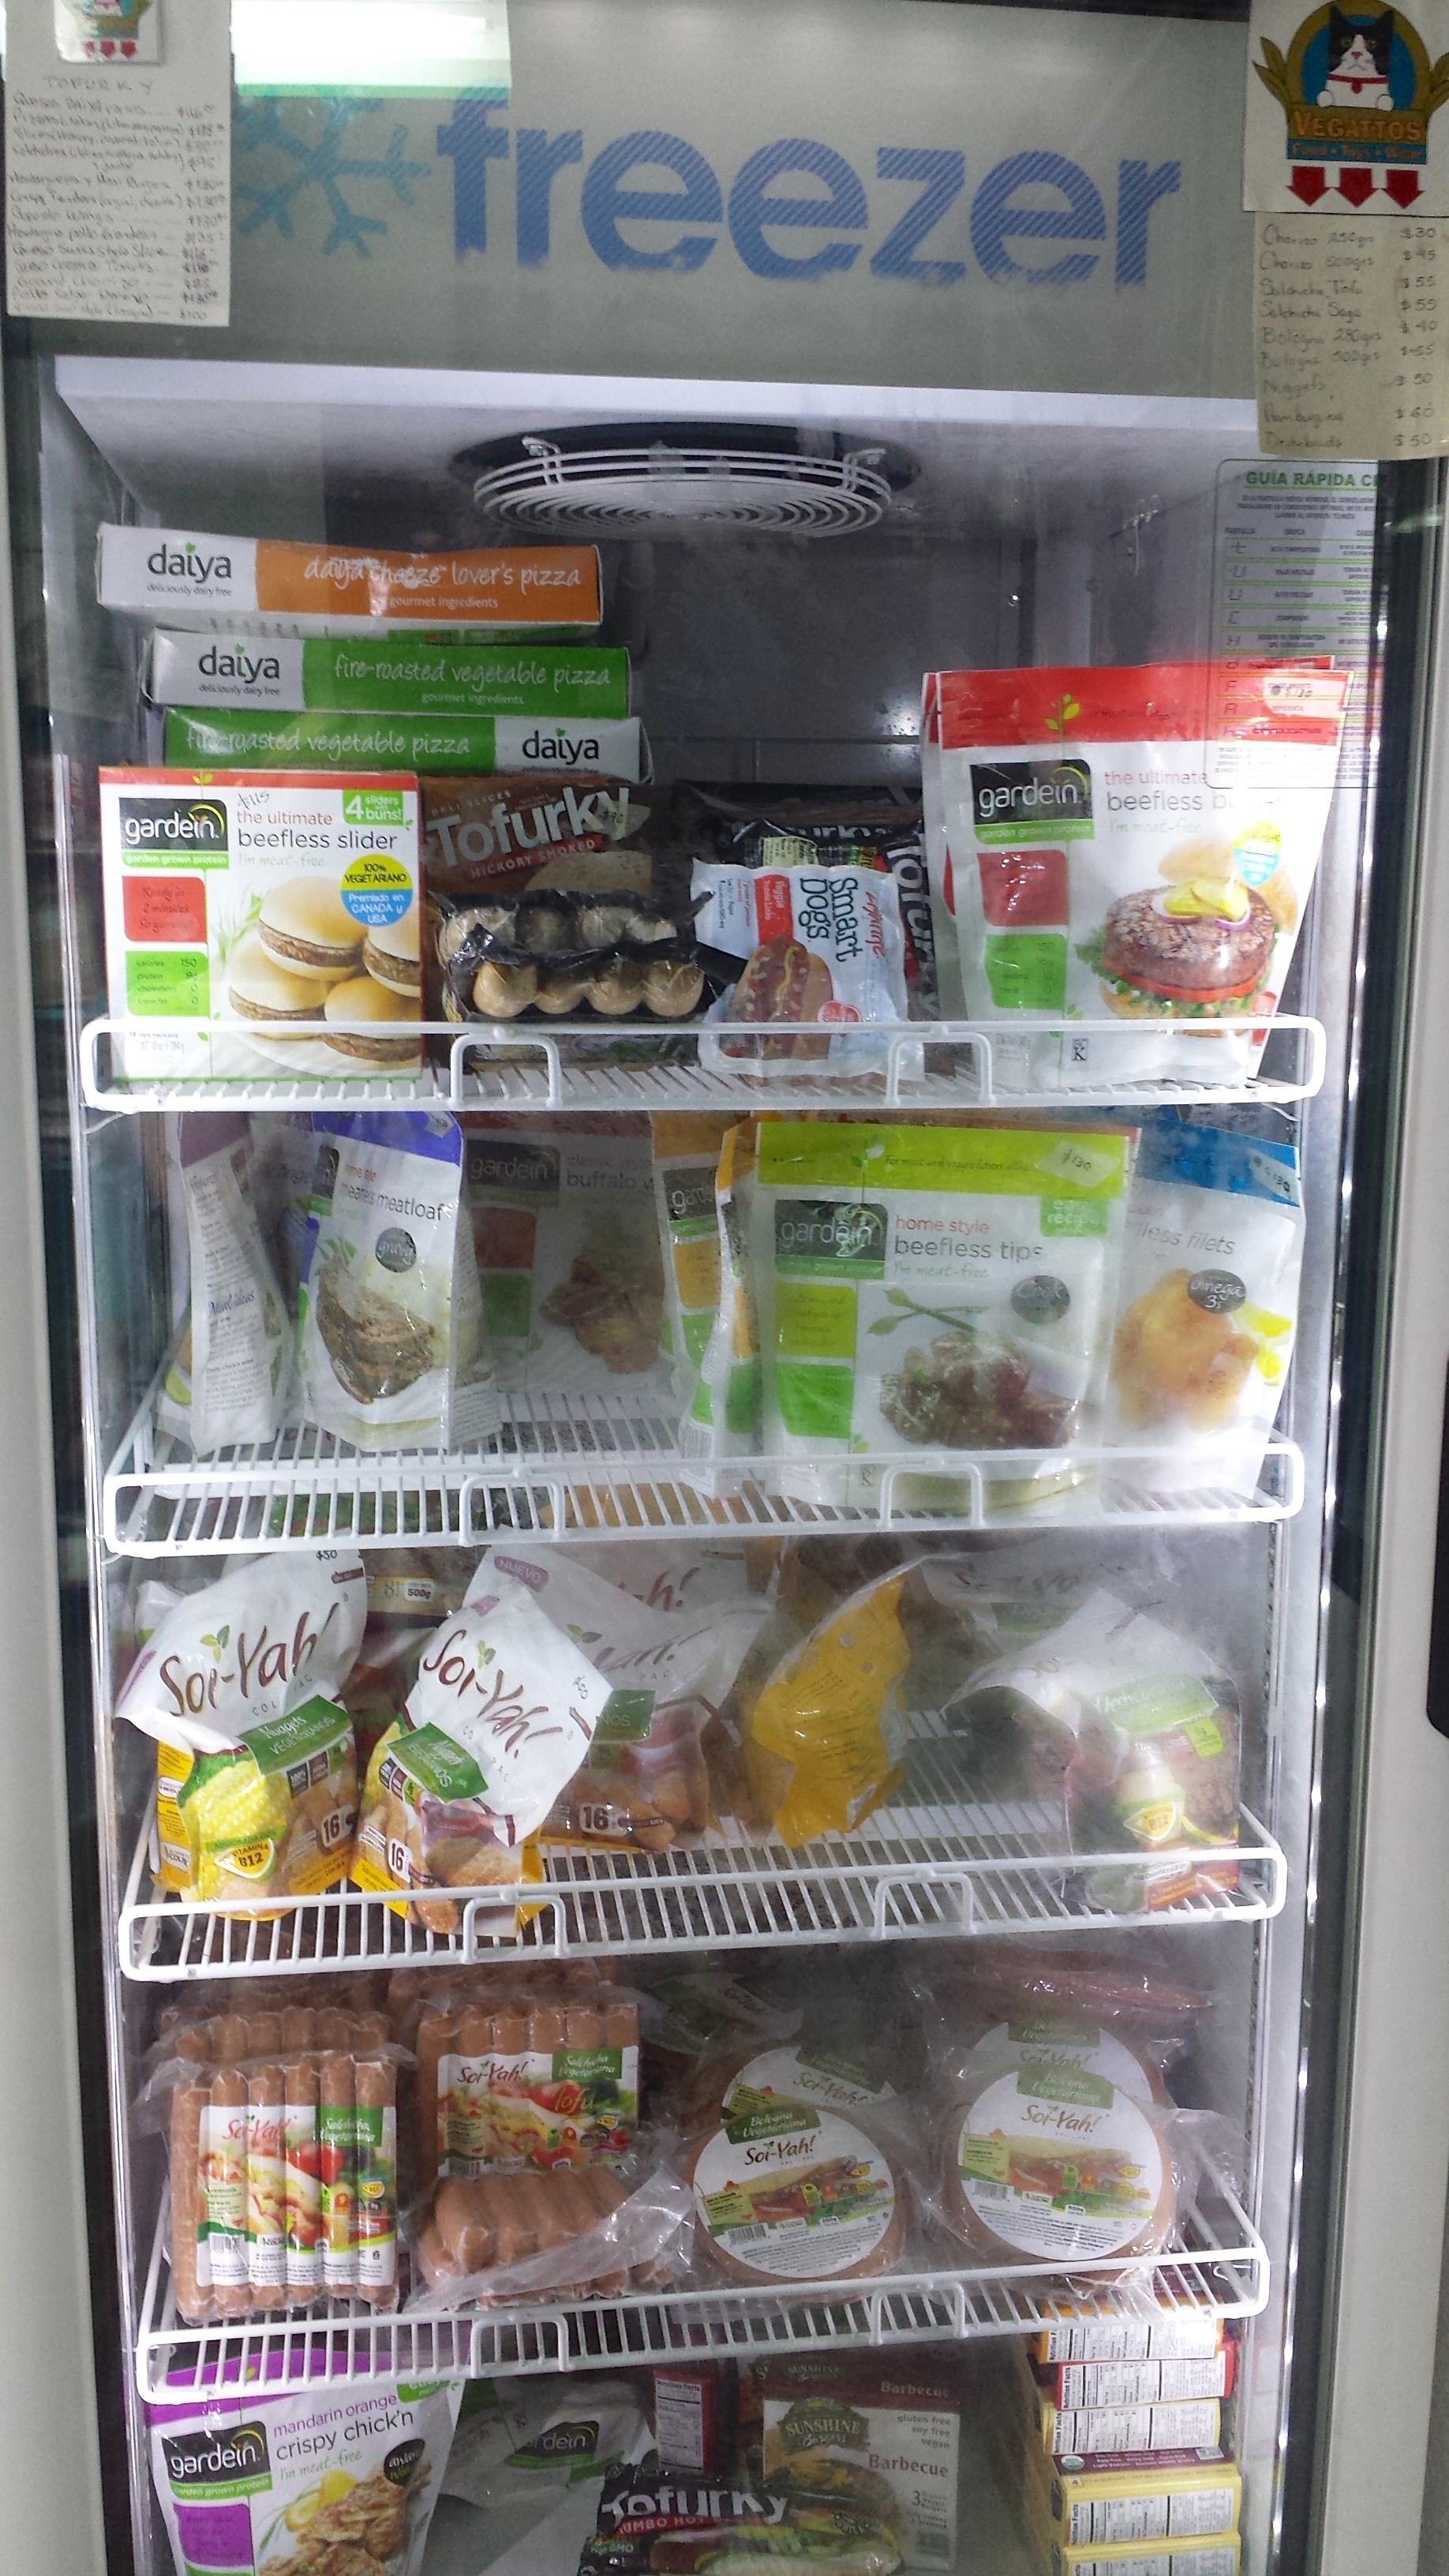 http://i1.wp.com/fatgayvegan.com/wp-content/uploads/2015/02/Freezer.jpg?fit=1836%2C3264